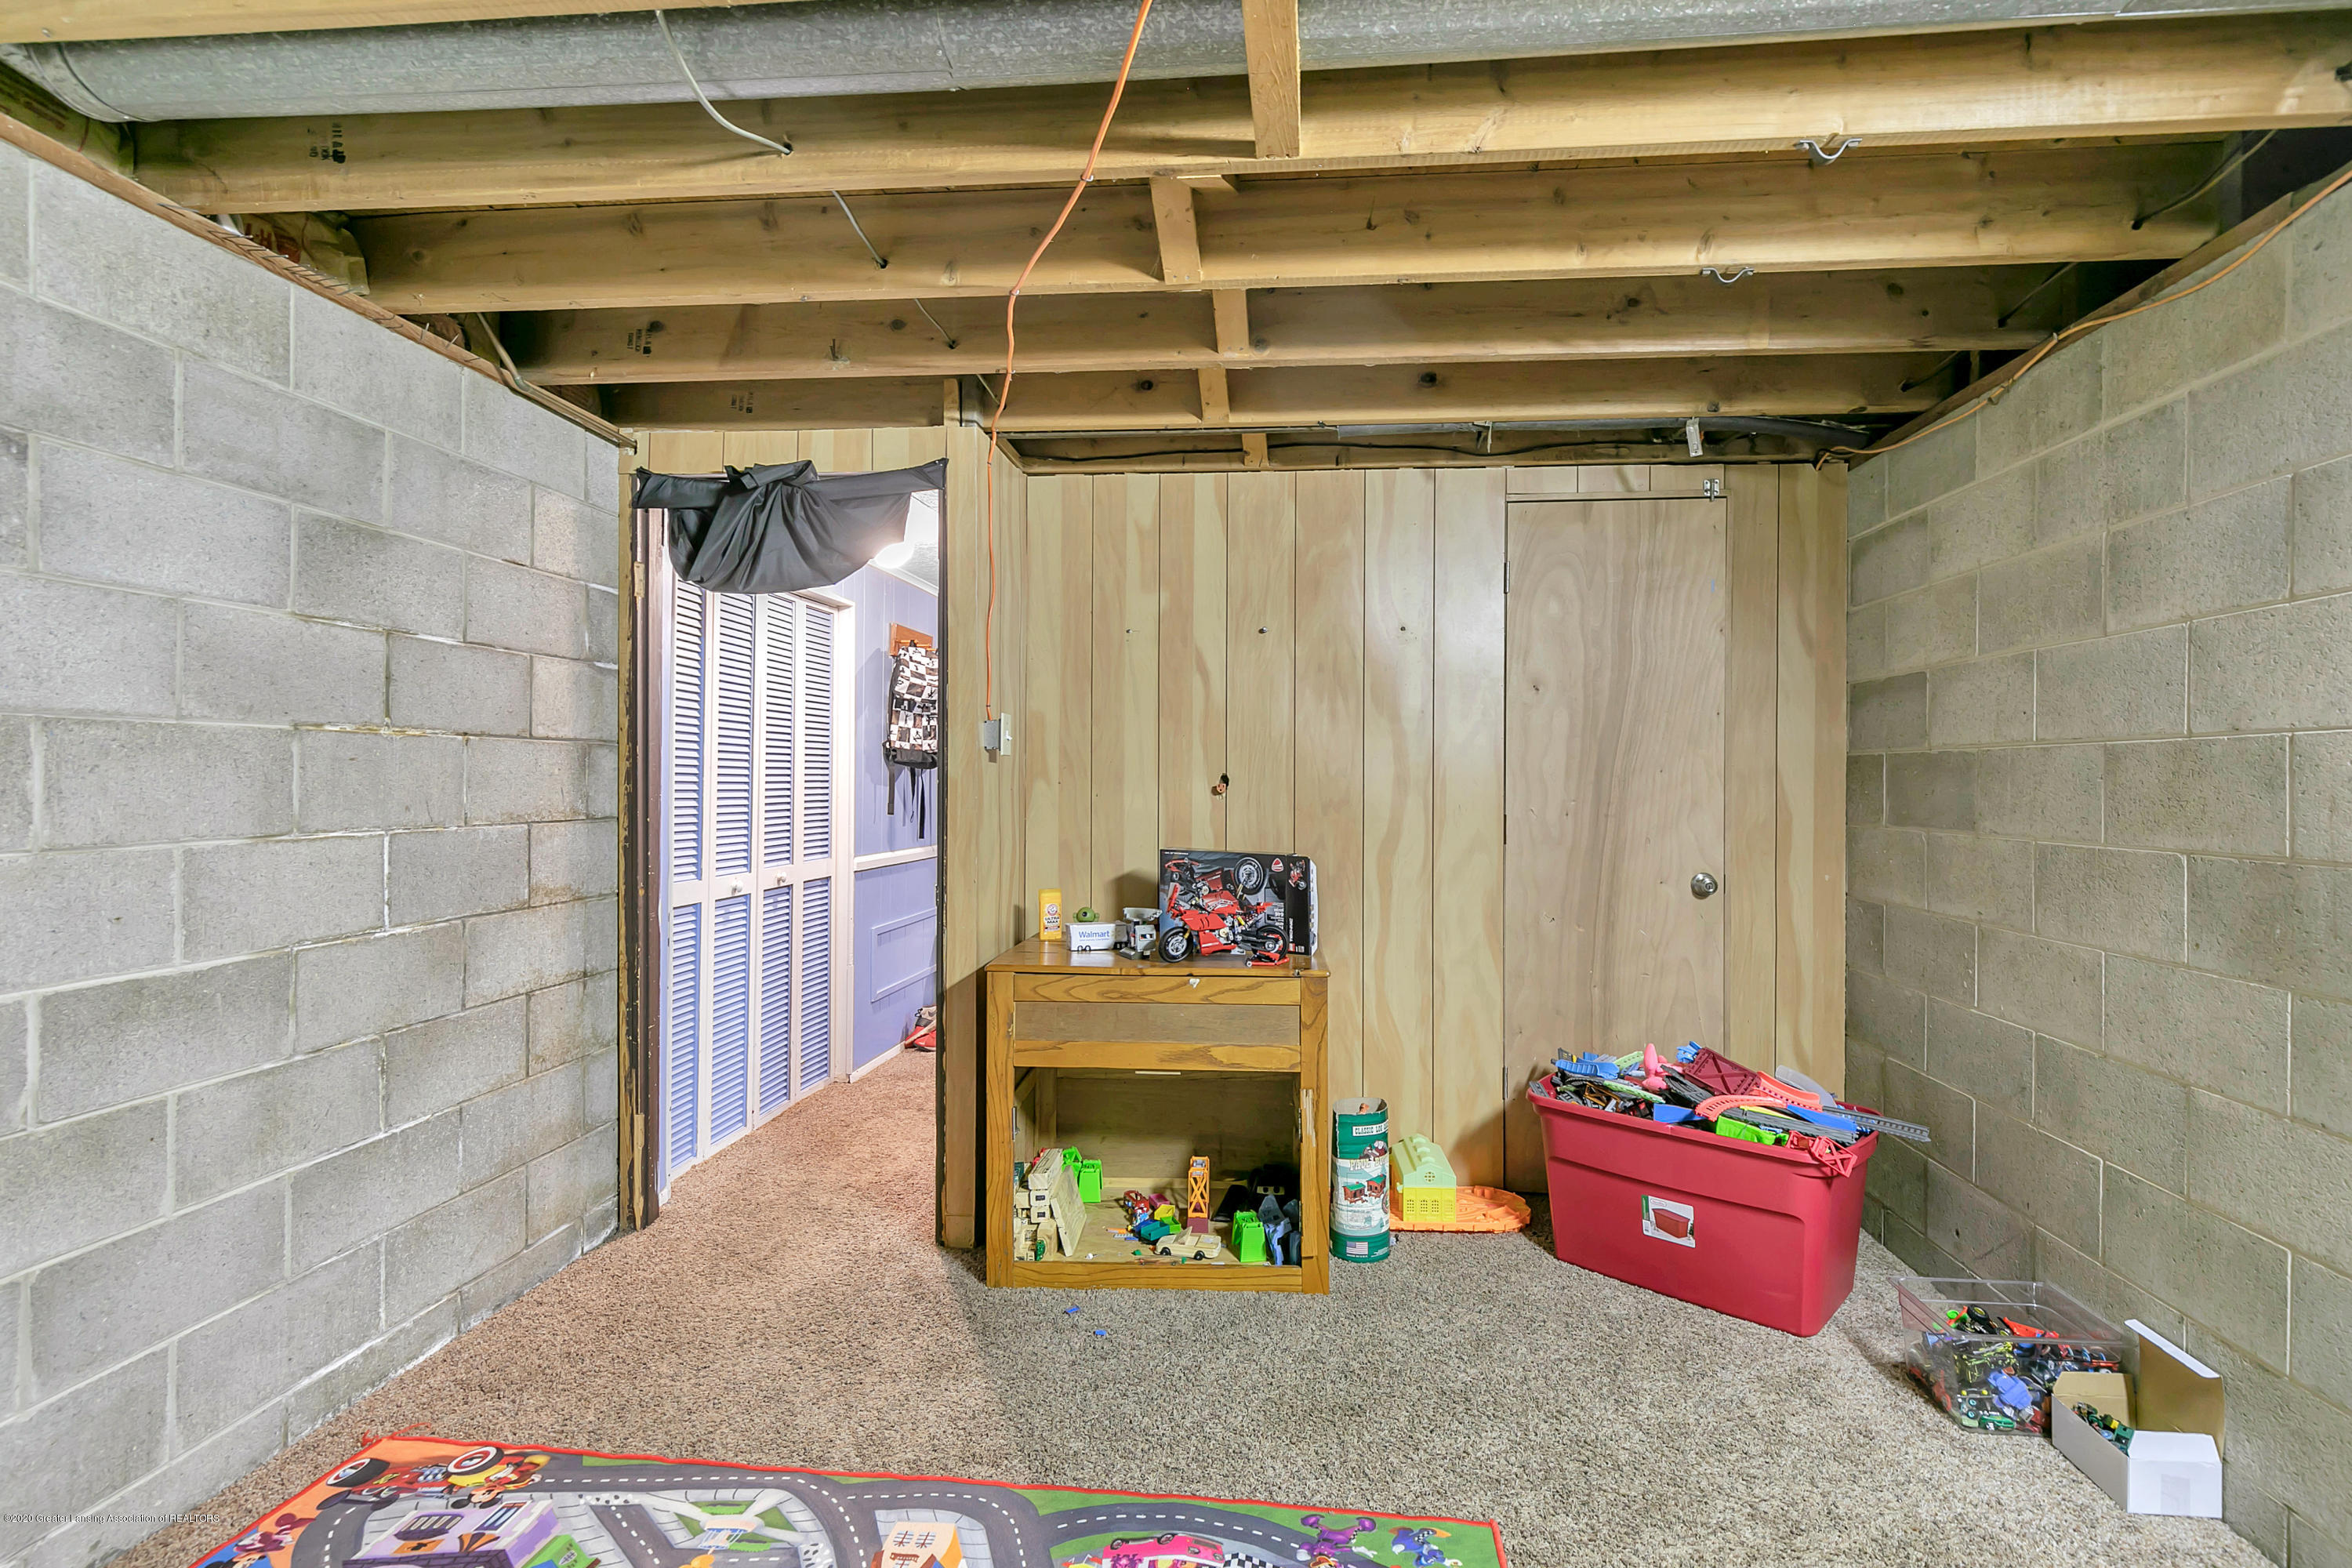 2844 S Deerfield Ave - 9I3A2598 - 23